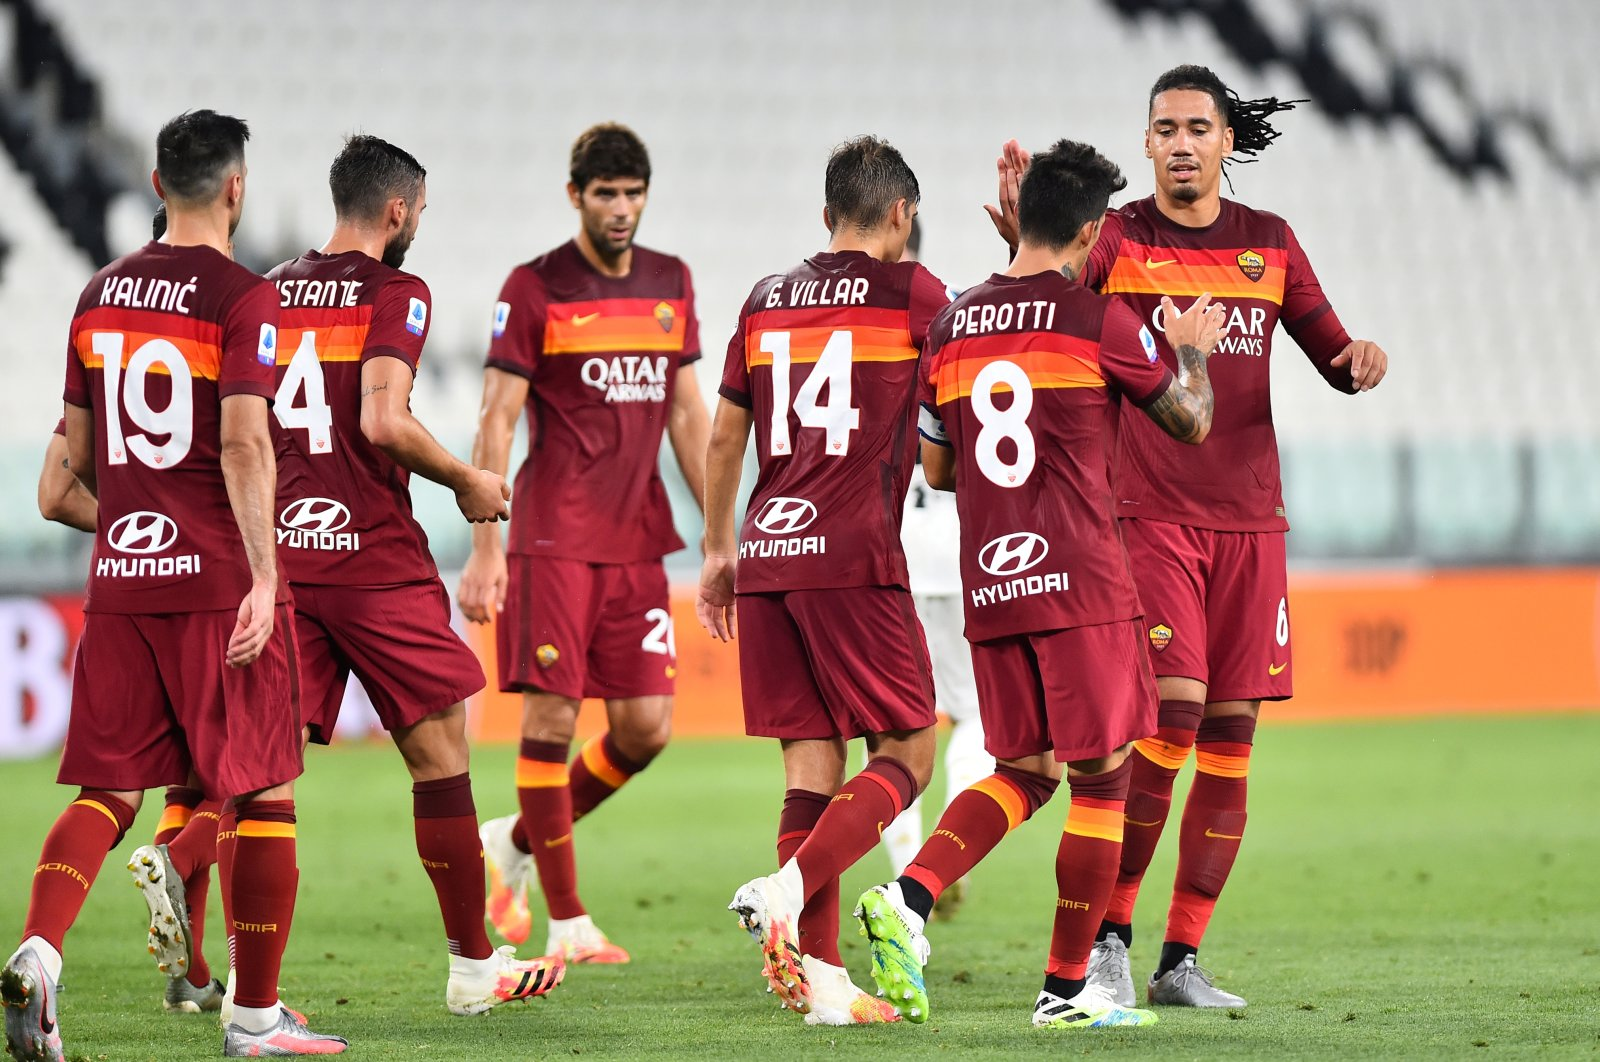 AS Roma players celebrate a goal during a Serie A match against Juventus in Turin, Italy, Aug. 1, 2020. (Reuters Photo)